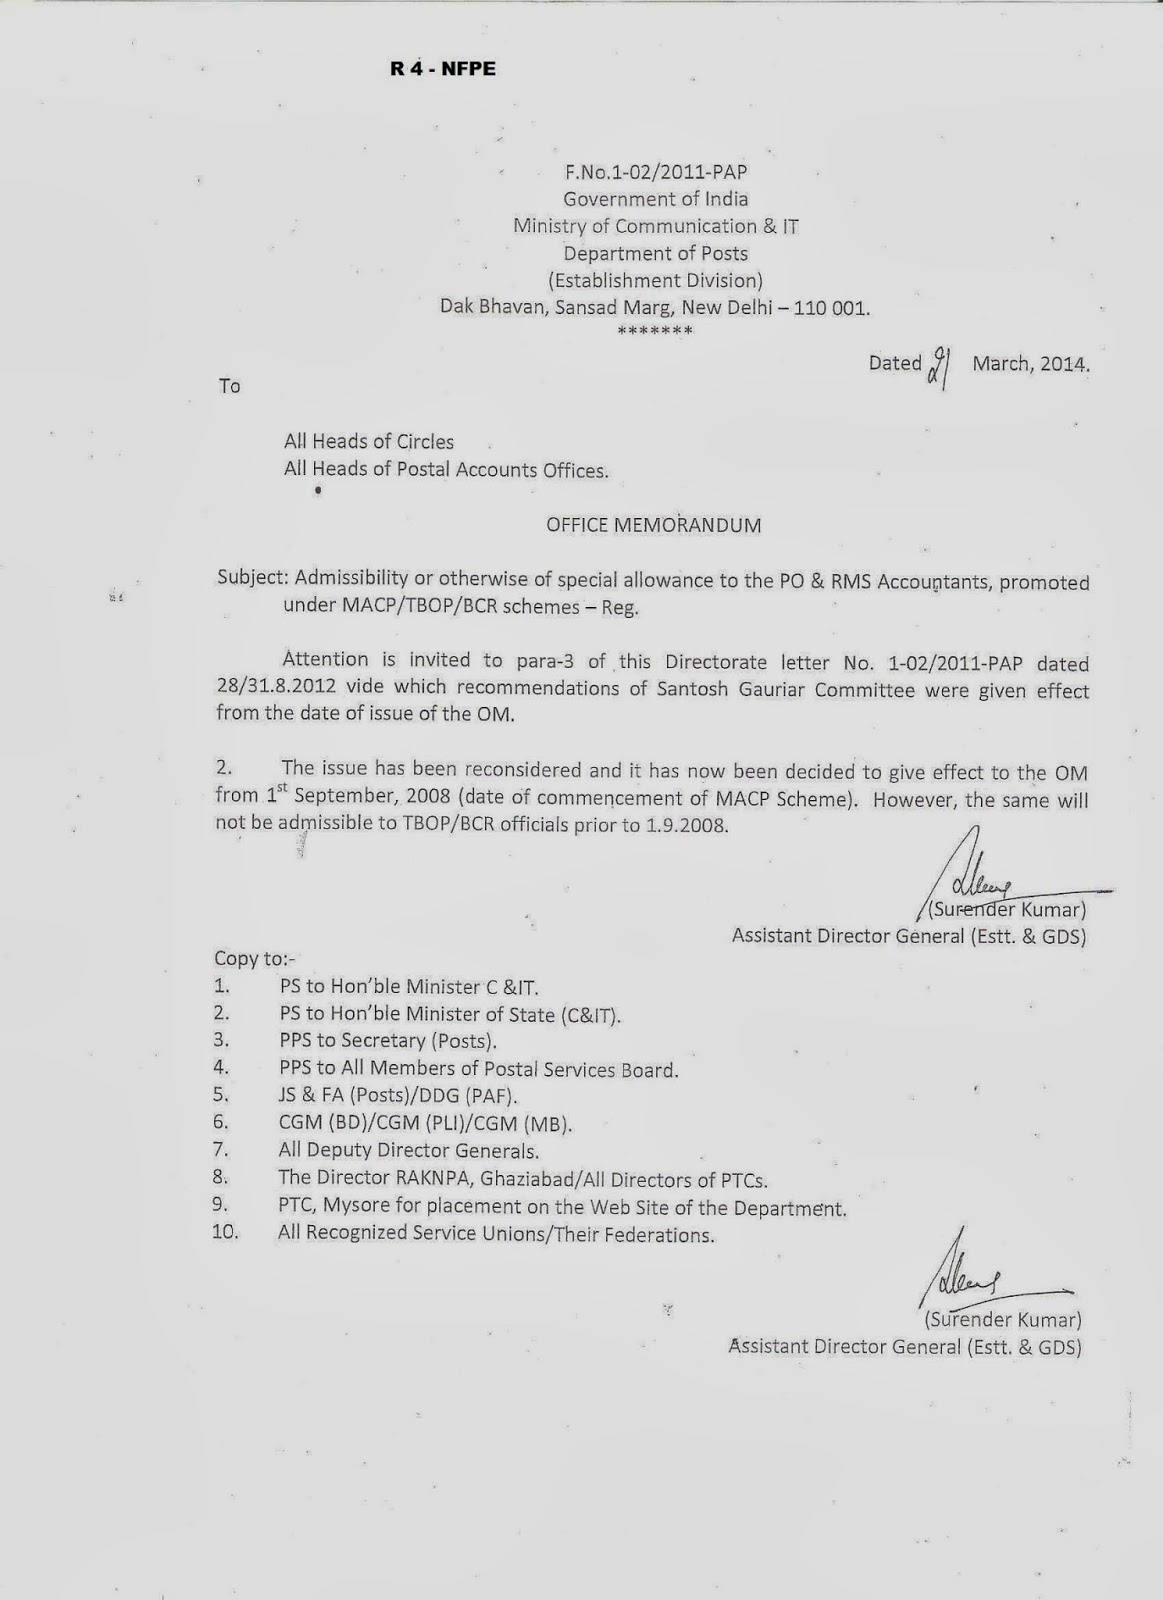 All india rms and mms employees union mailguards multi tasking special allowance to the po rms accountants promoted under macptbopbcr wef 192008 altavistaventures Gallery